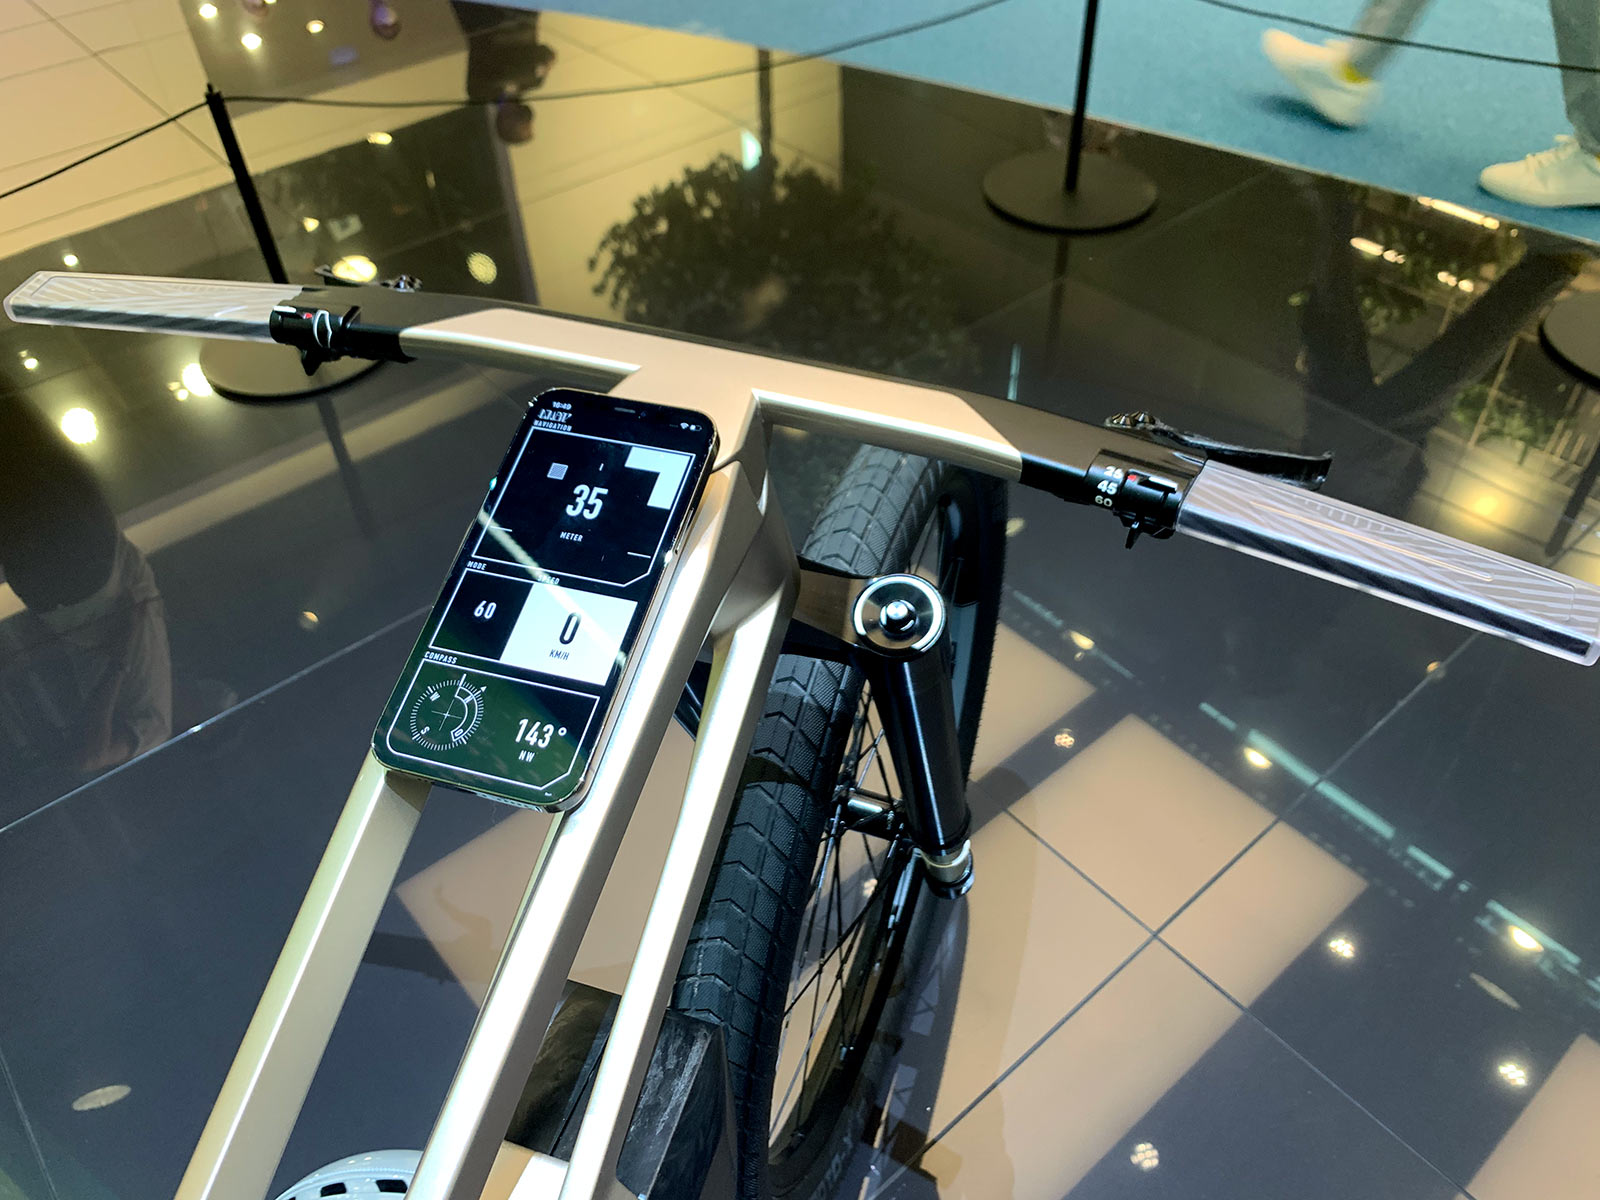 app with geofencing for location based speed limiting on BMW concept e-bike